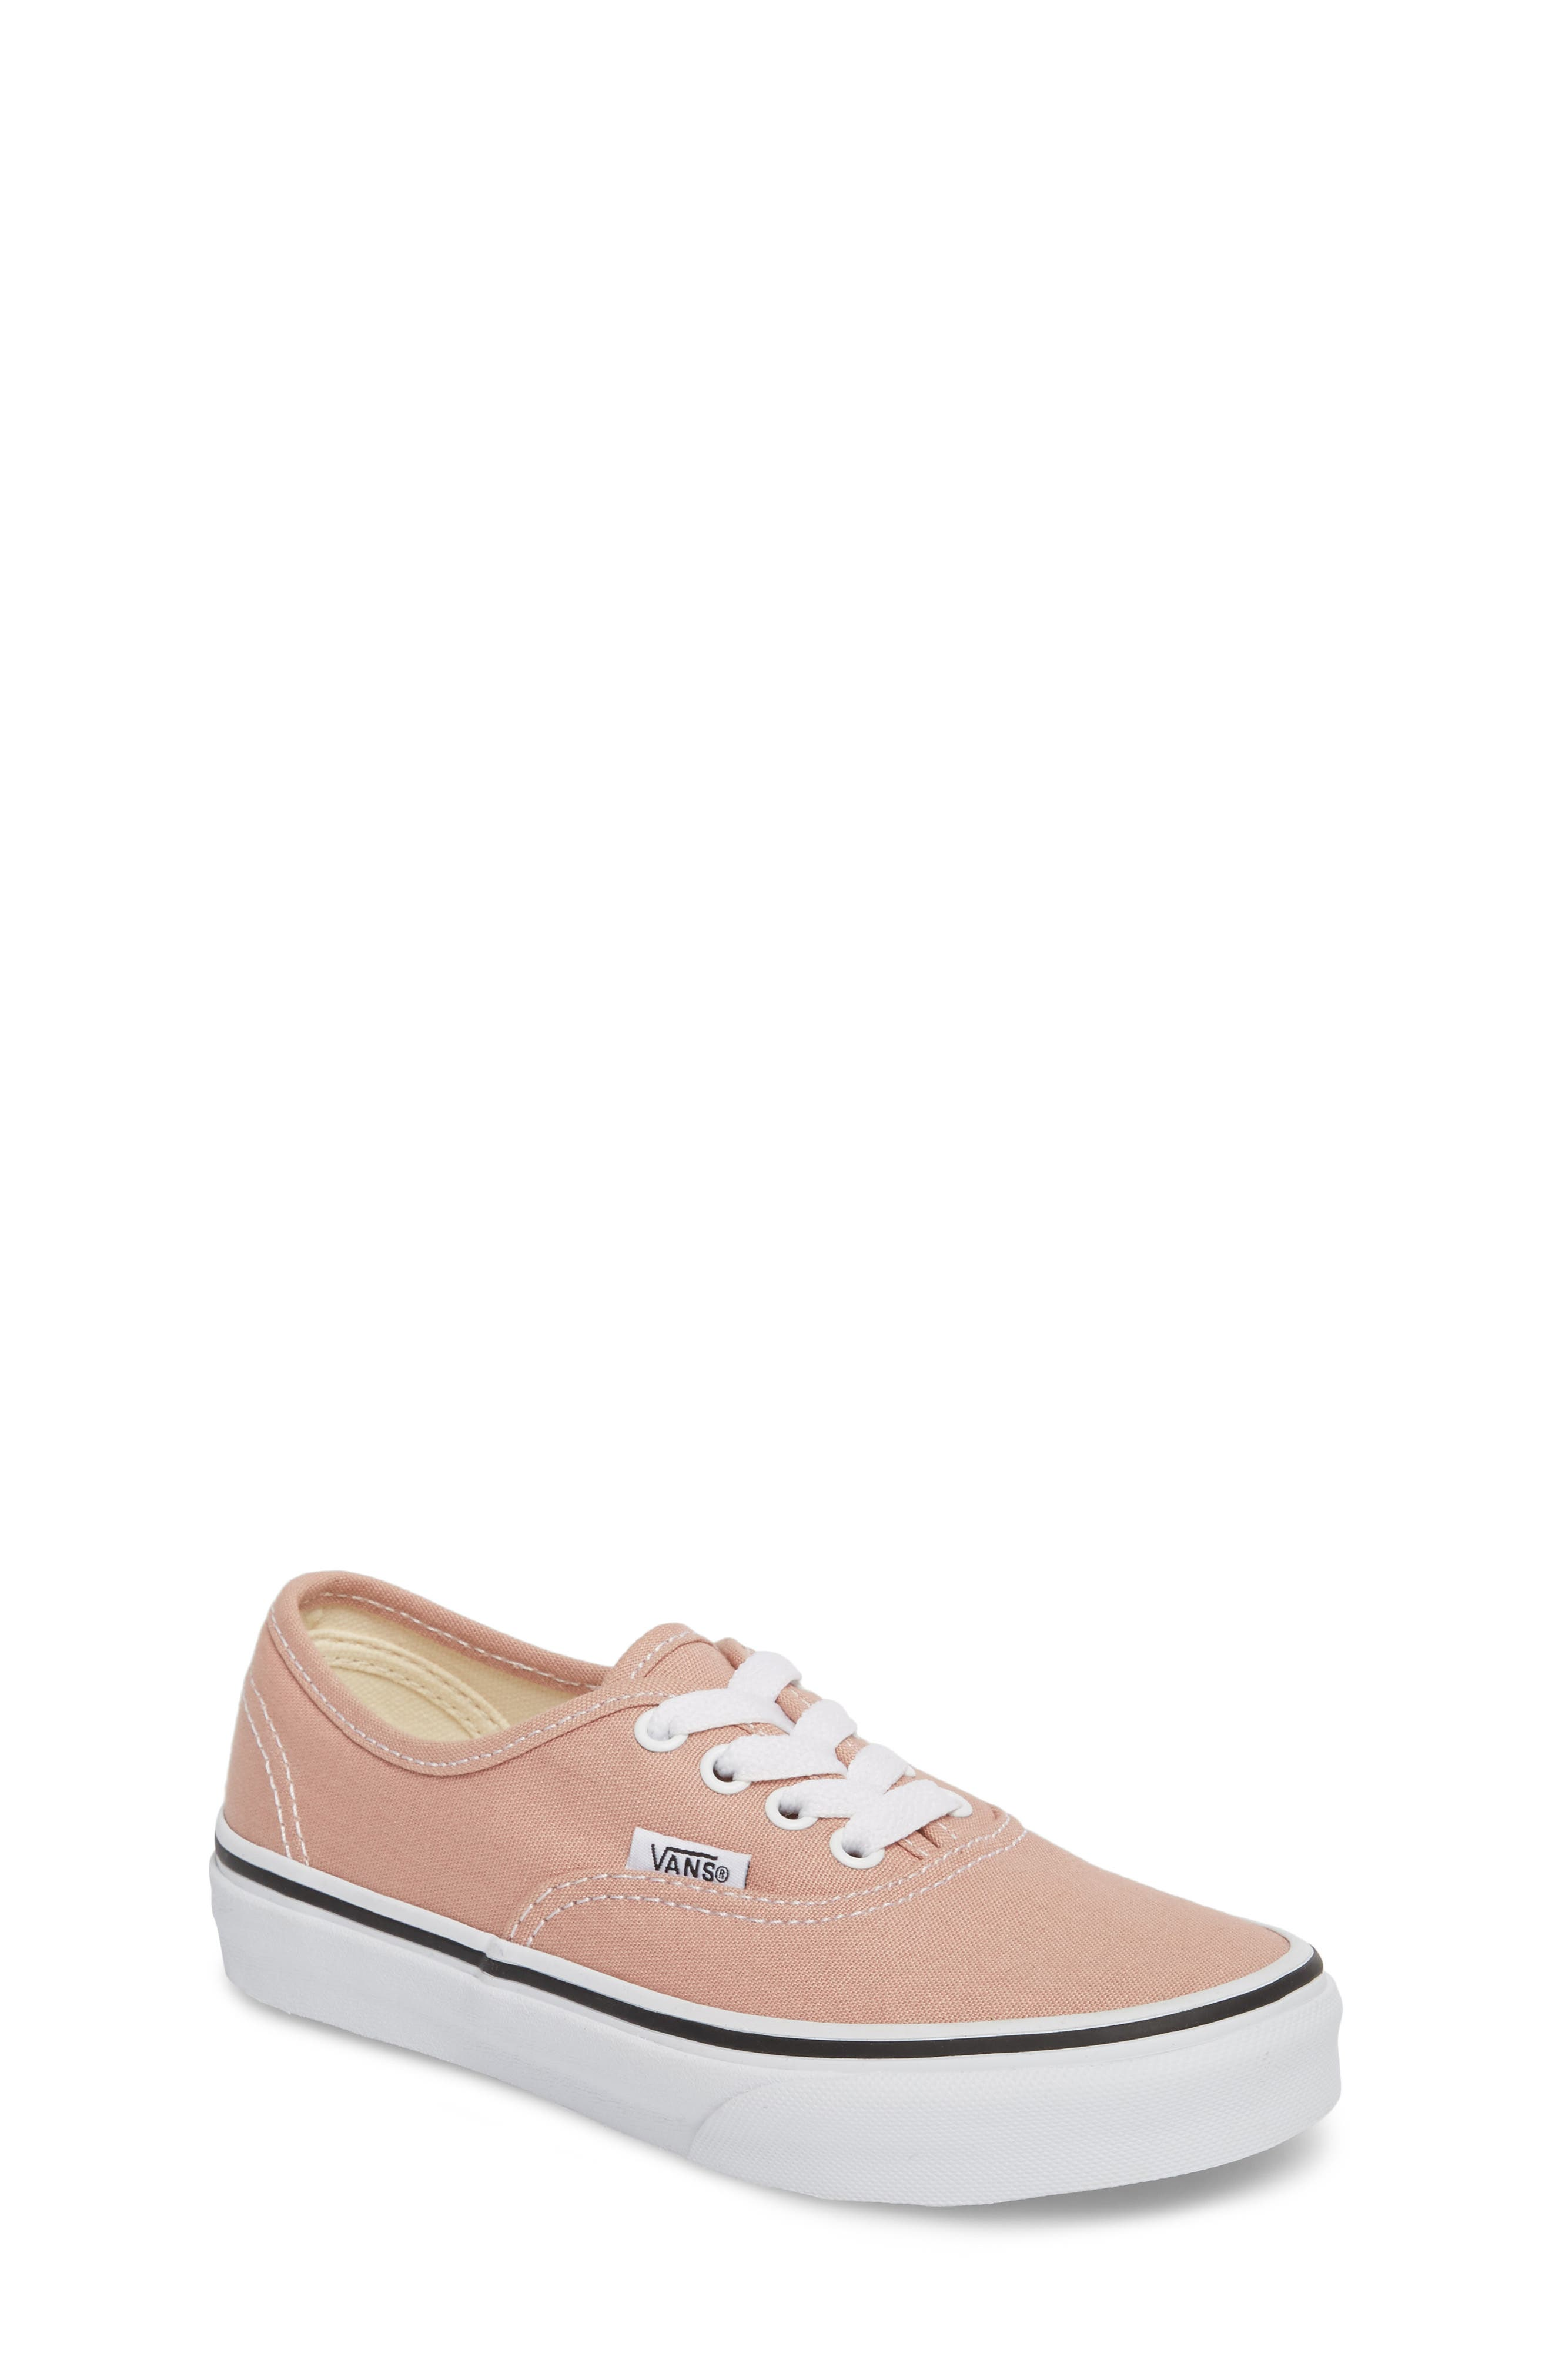 Vans Authentic Sneaker (Baby, Walker, Toddler, Little Kid & Big Kid)